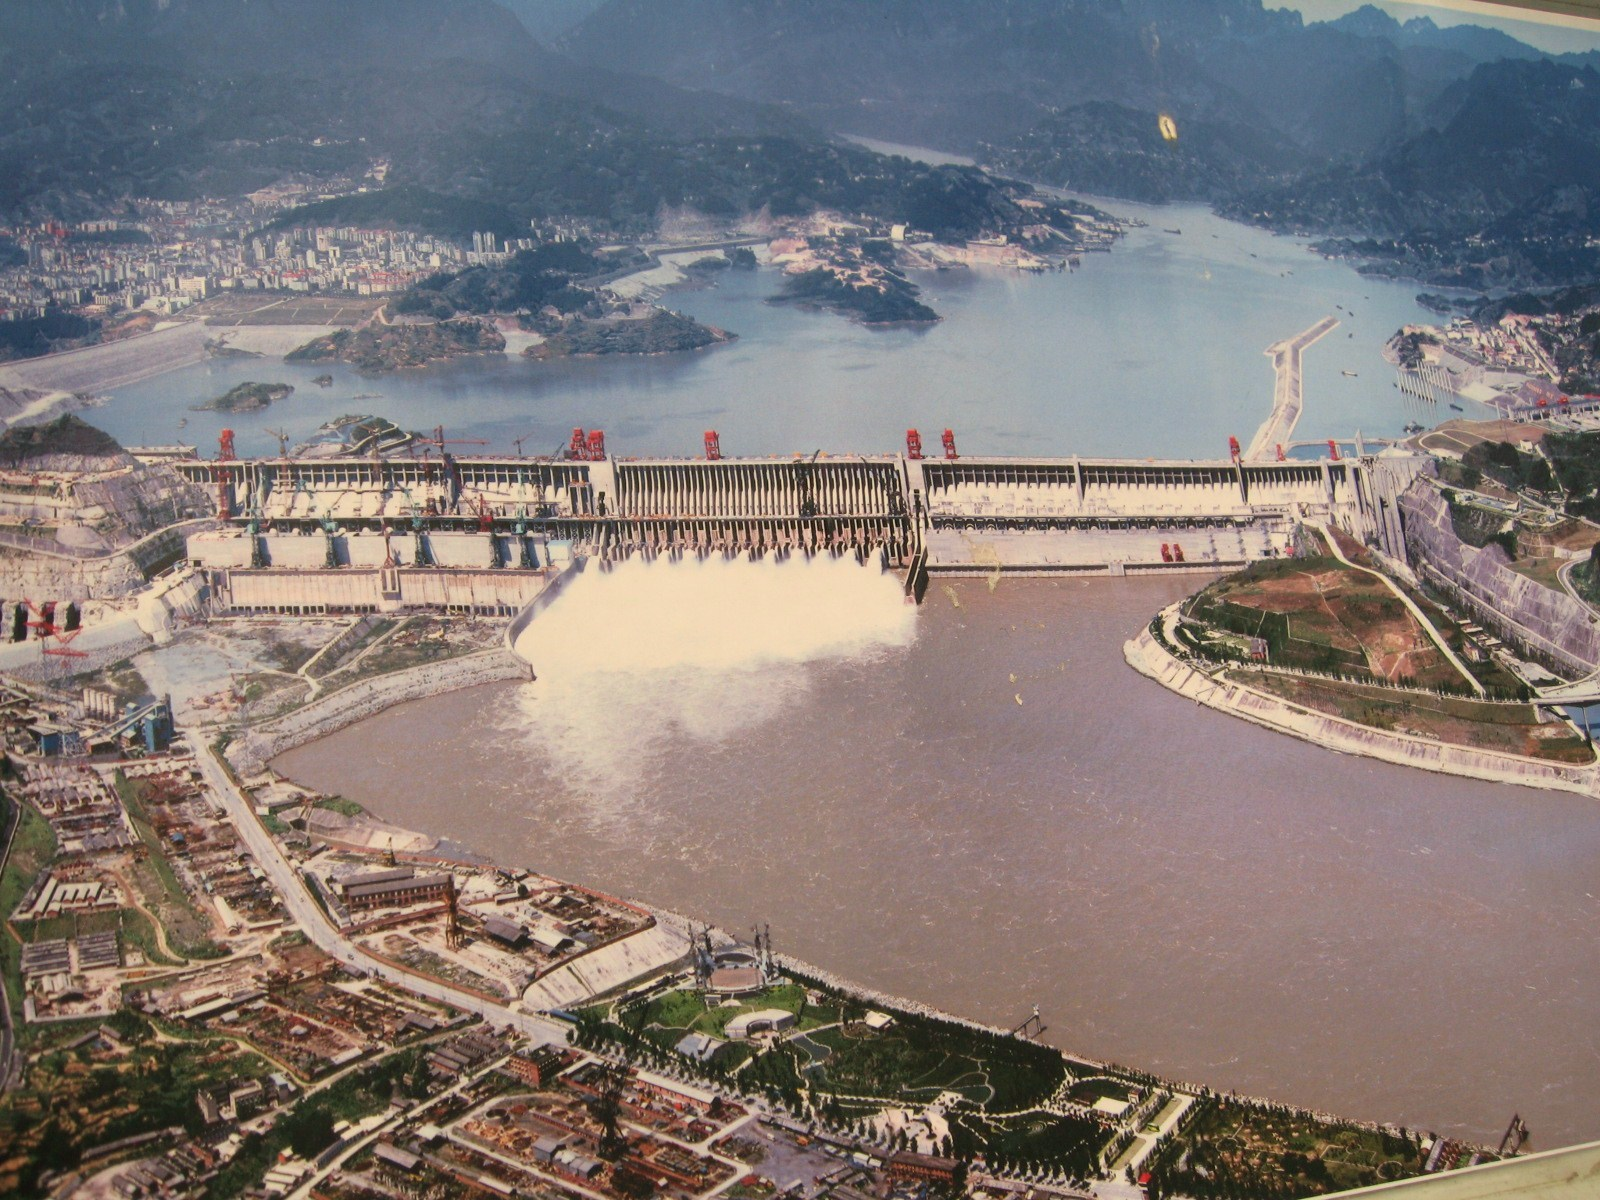 Three gorges dam project china s biggest project since the great wall - Three Gorges Dam Project China S Biggest Project Since The Great Wall 33